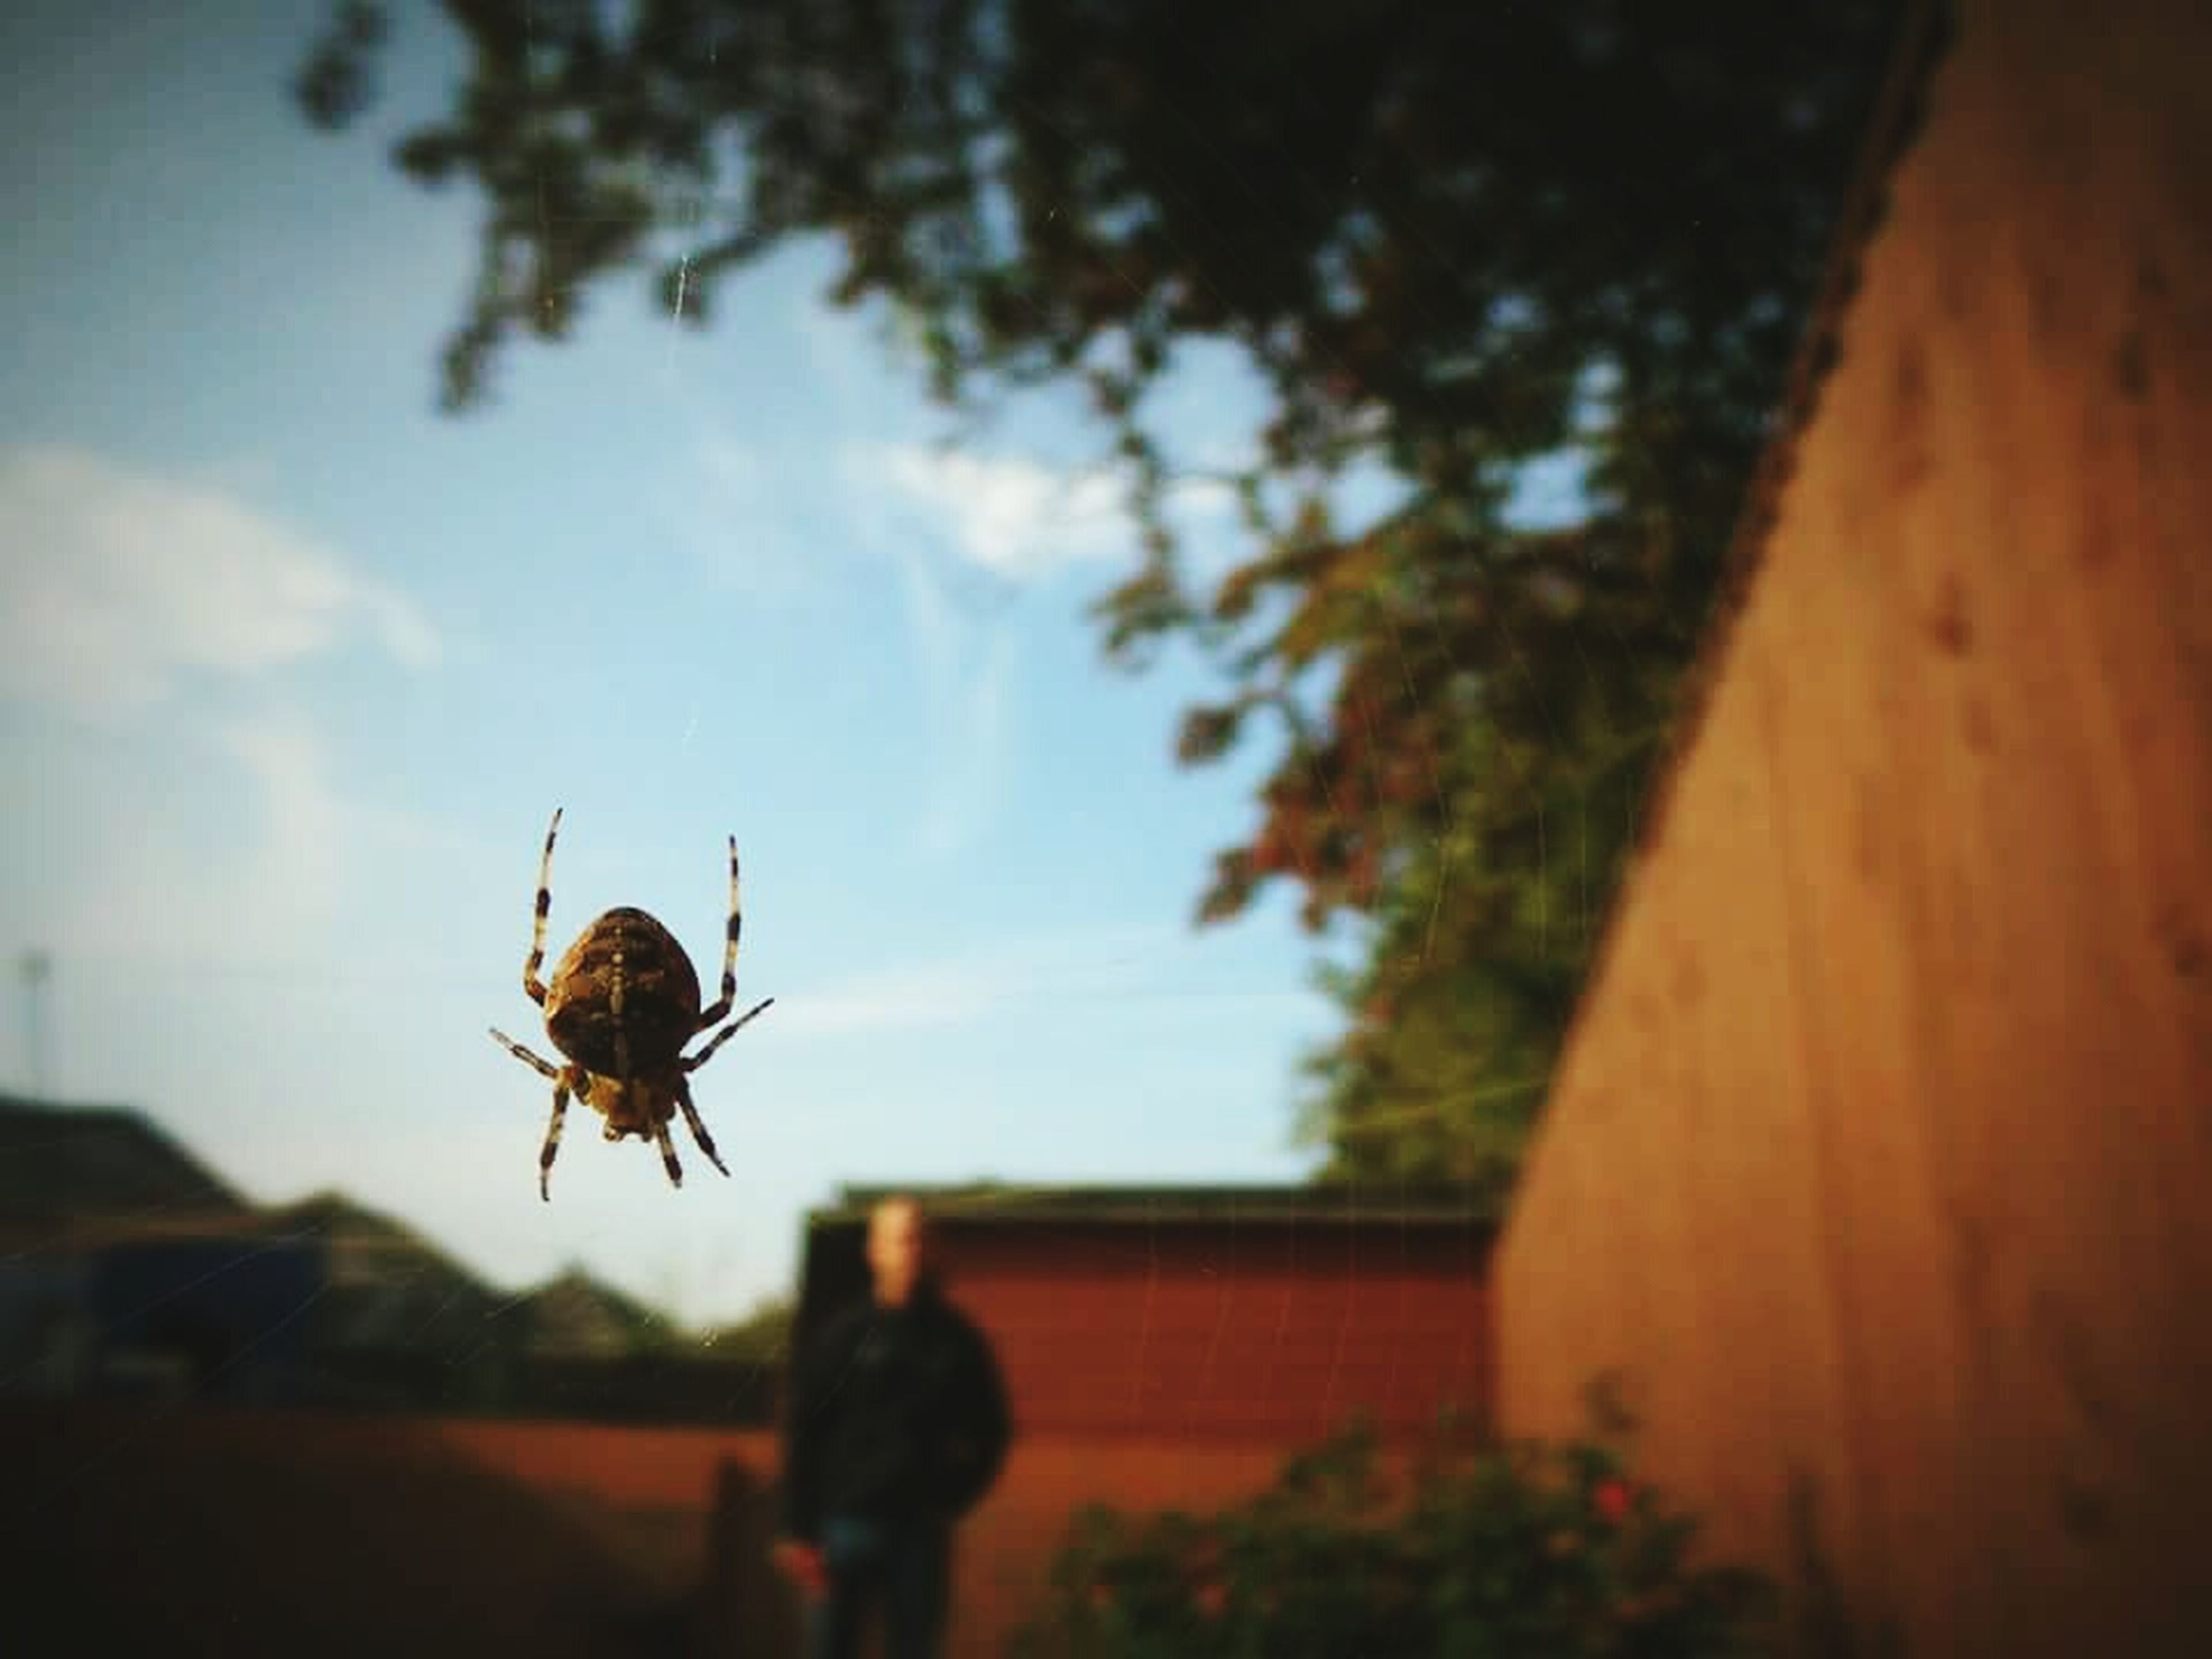 insect, animals in the wild, animal themes, one animal, wildlife, focus on foreground, selective focus, architecture, built structure, building exterior, flying, day, close-up, outdoors, low angle view, full length, two animals, sky, spider, mid-air